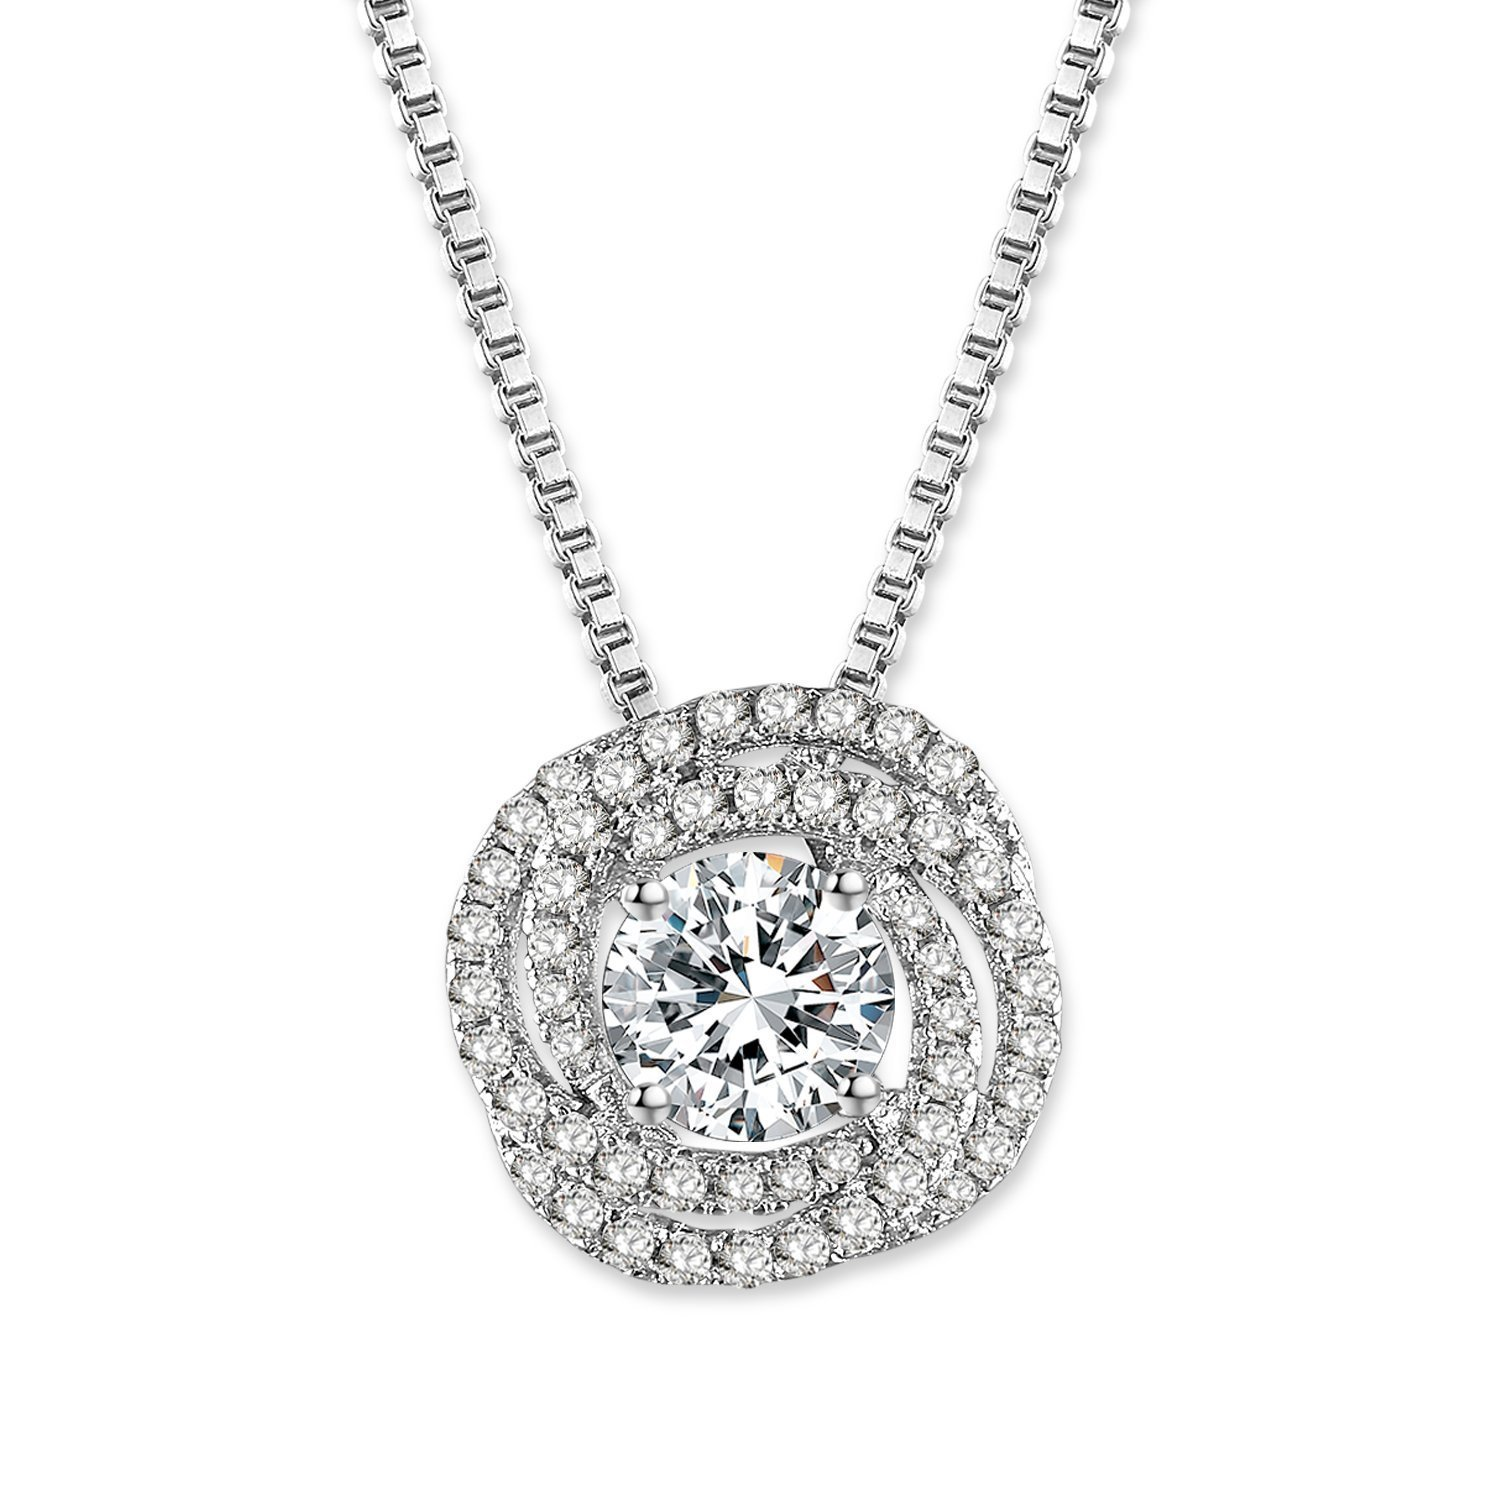 GEORGE · SMITH Classic 925 Sterling Silver Pendant Crystal Necklaces with 4A Cubic Zircon Diamonds Birthday Wedding Gifts for Women with Luxury Jewelry Box